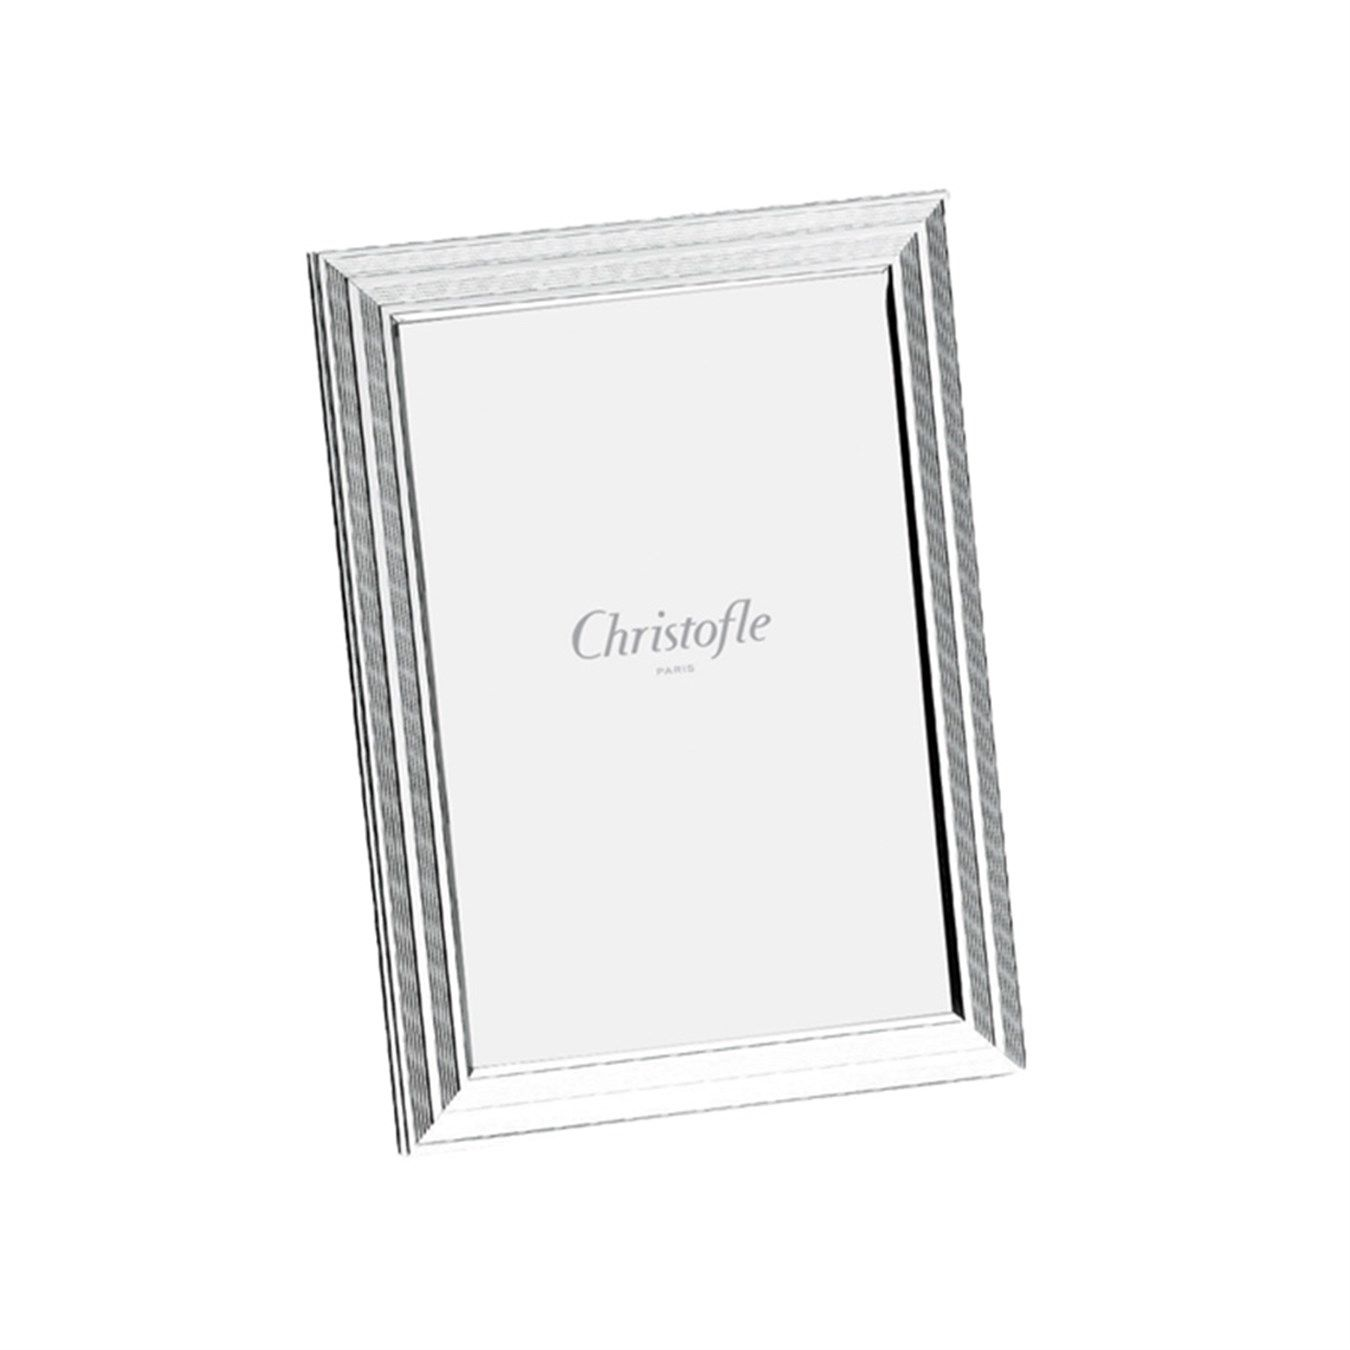 Christofle Filets Silverplated Picture Frame Collection Silver Frames Picture Frames Home Decor Scullyandscully Com Home Decor Ideas Silver Picture Frames Picture Frames Silver Frames